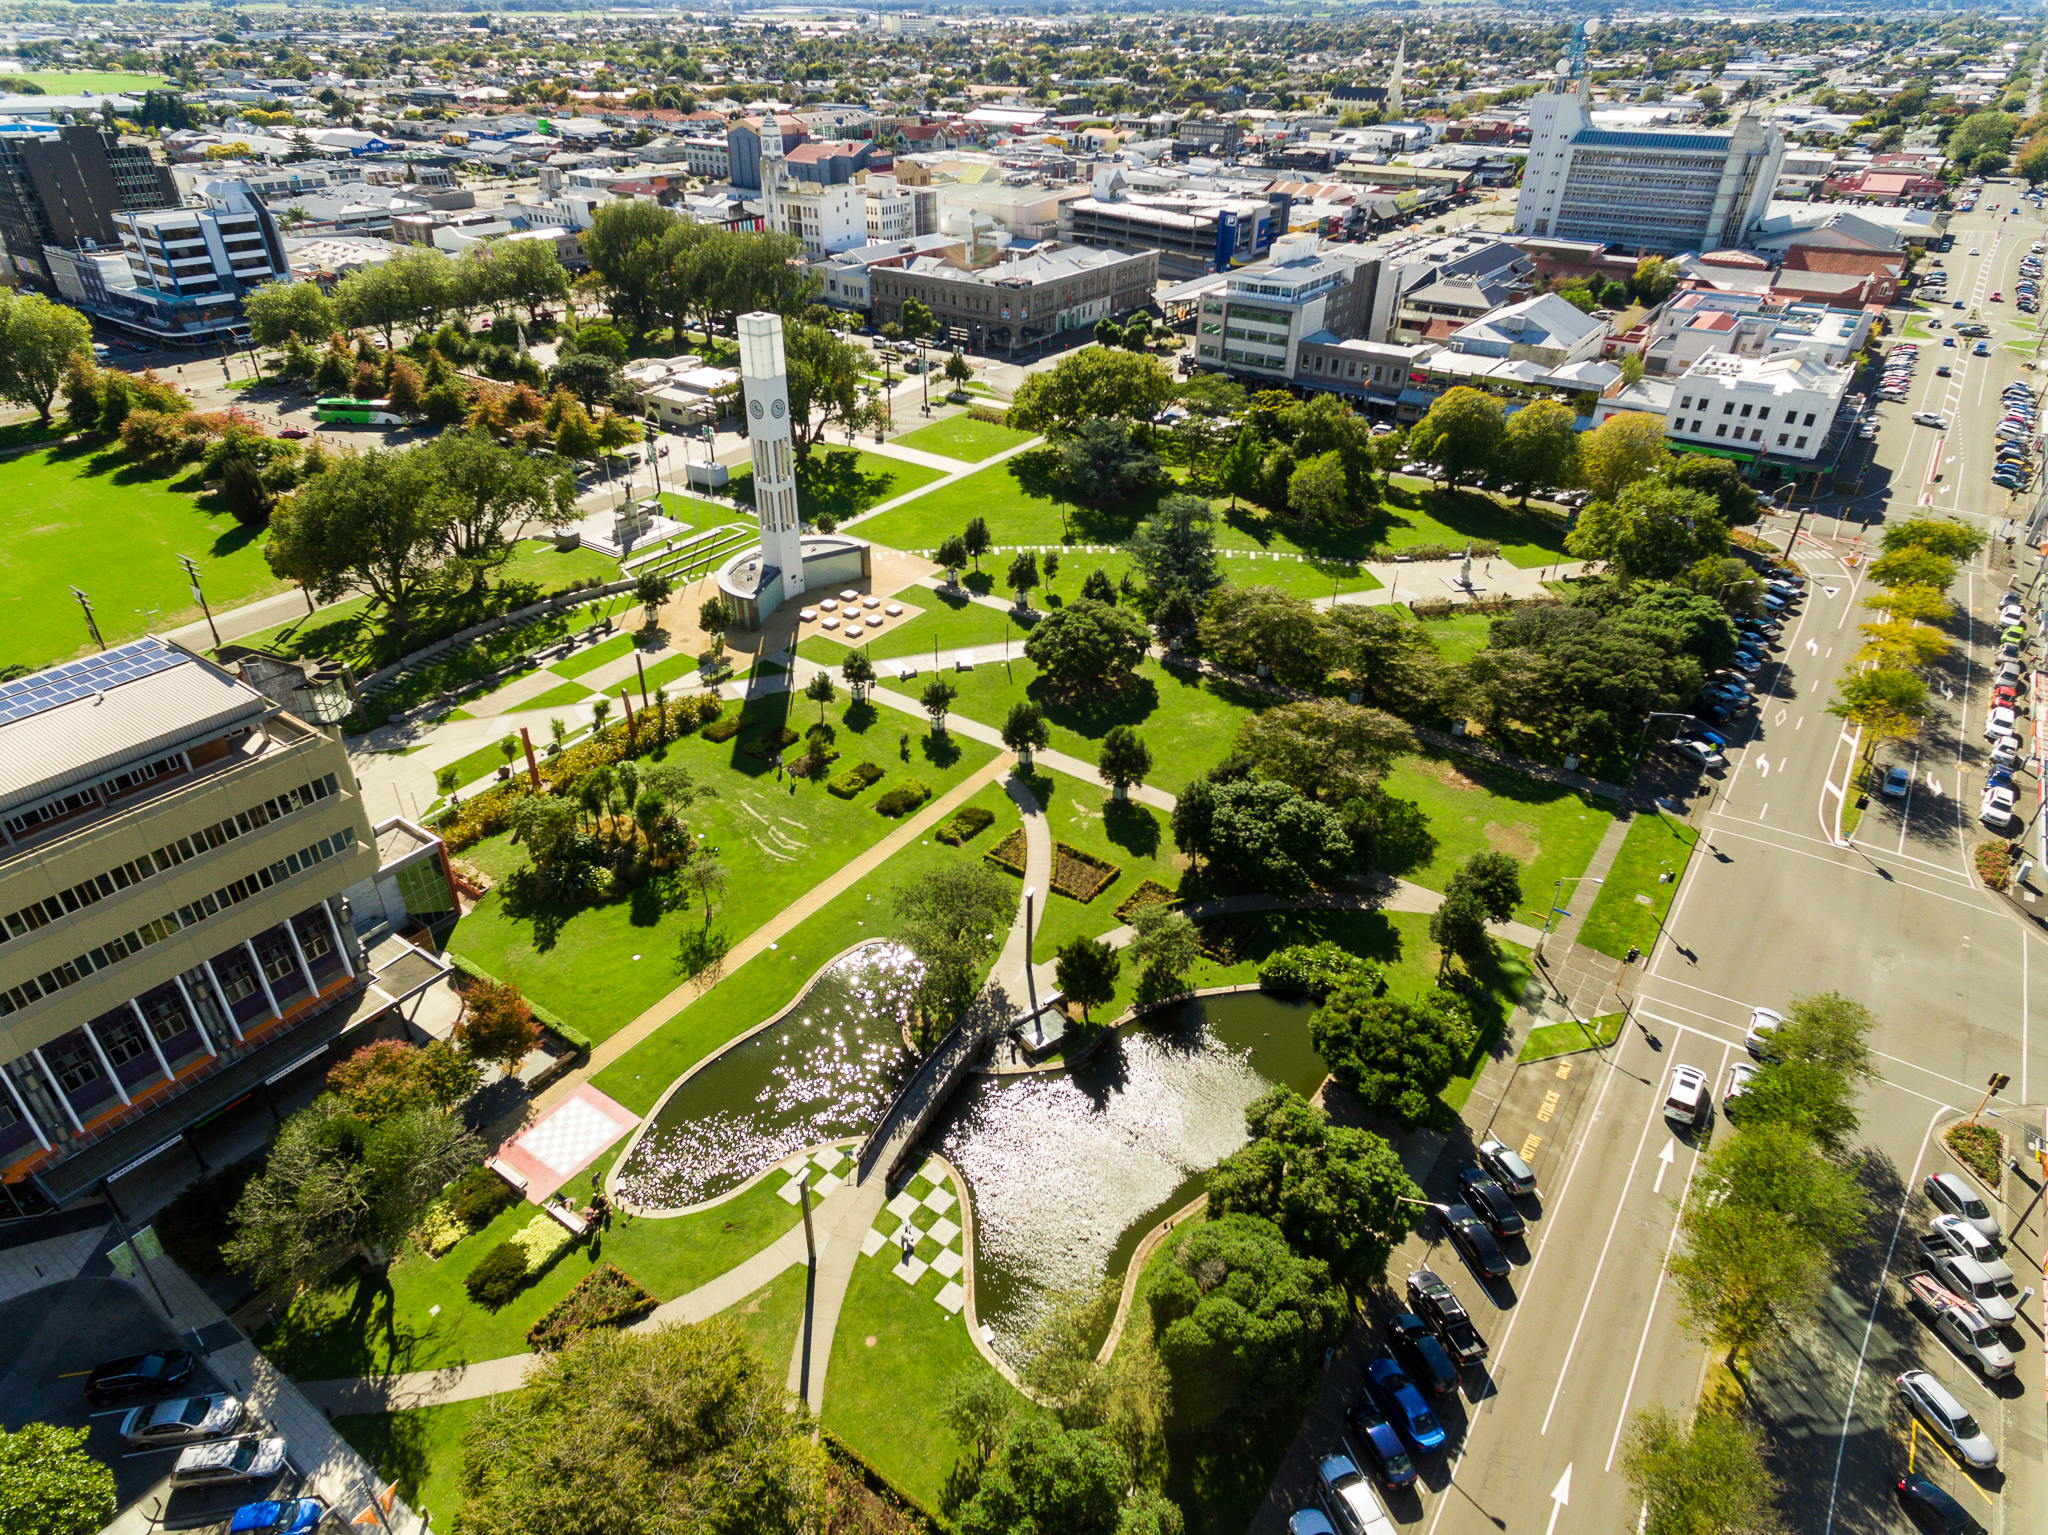 Consultant Psychiatrist (General Adult) - Palmerston North, Central North Island